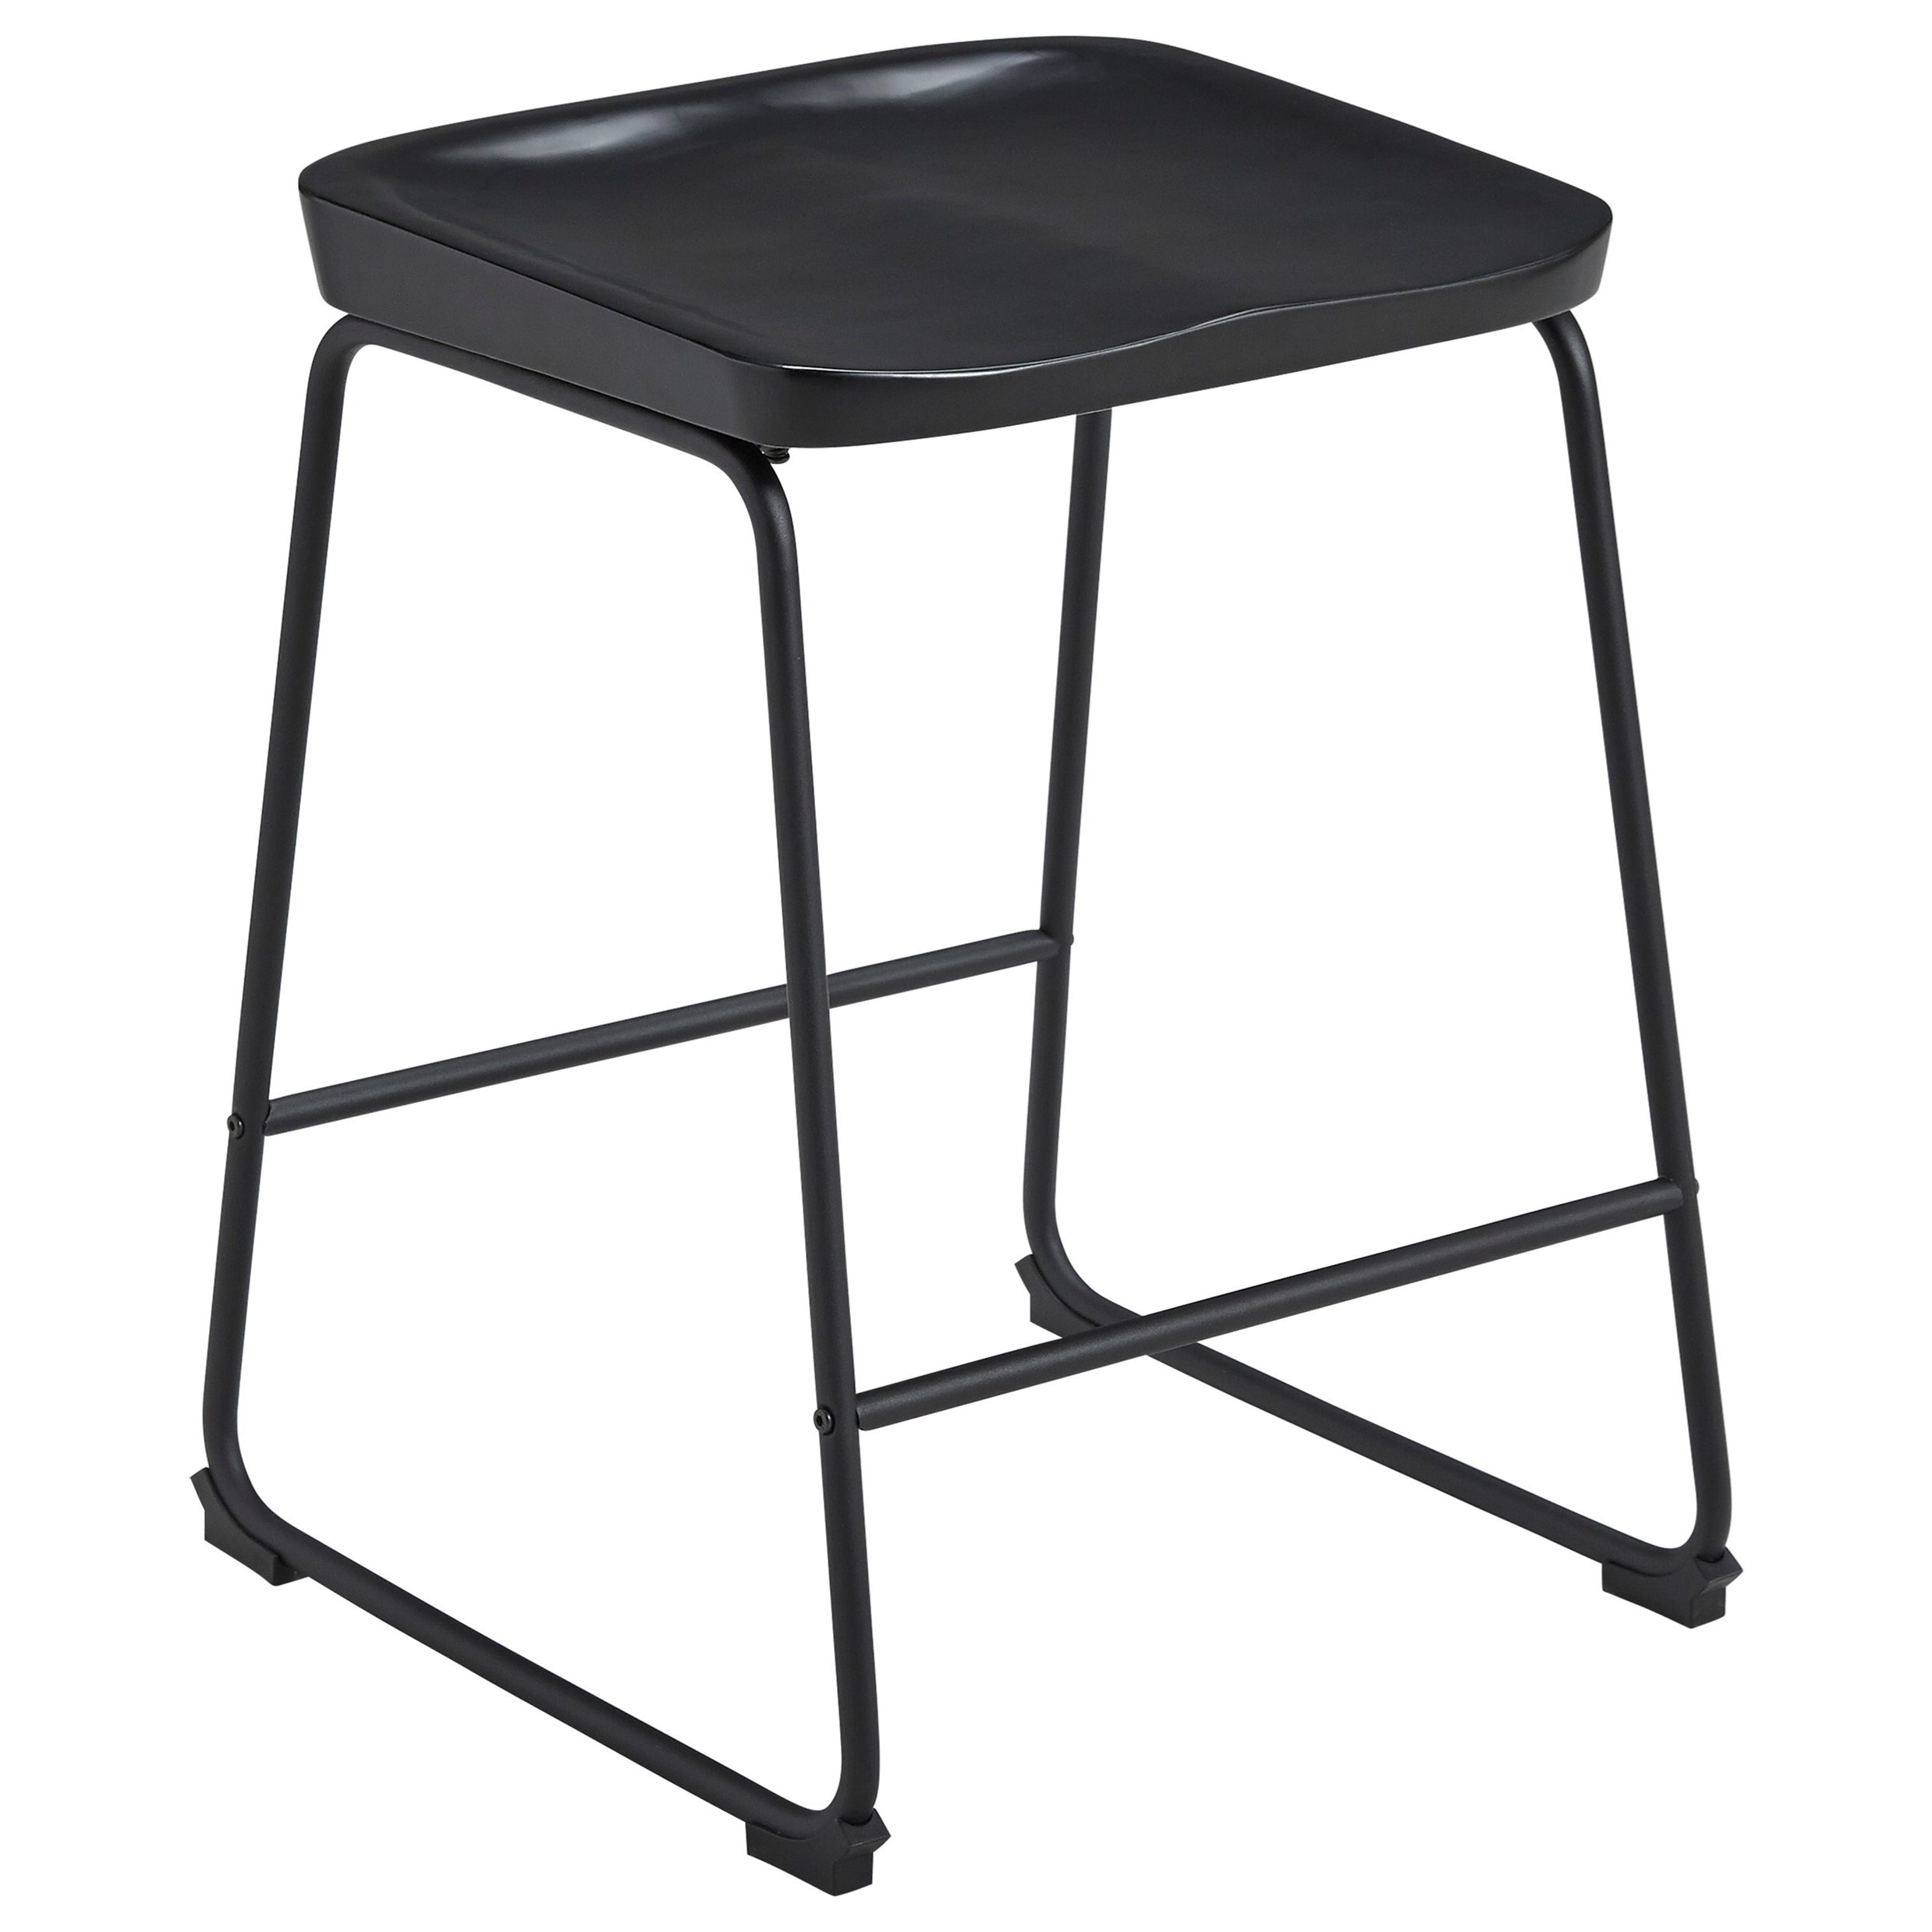 Showdell Barstool by Signature Design by Ashley at Red Knot